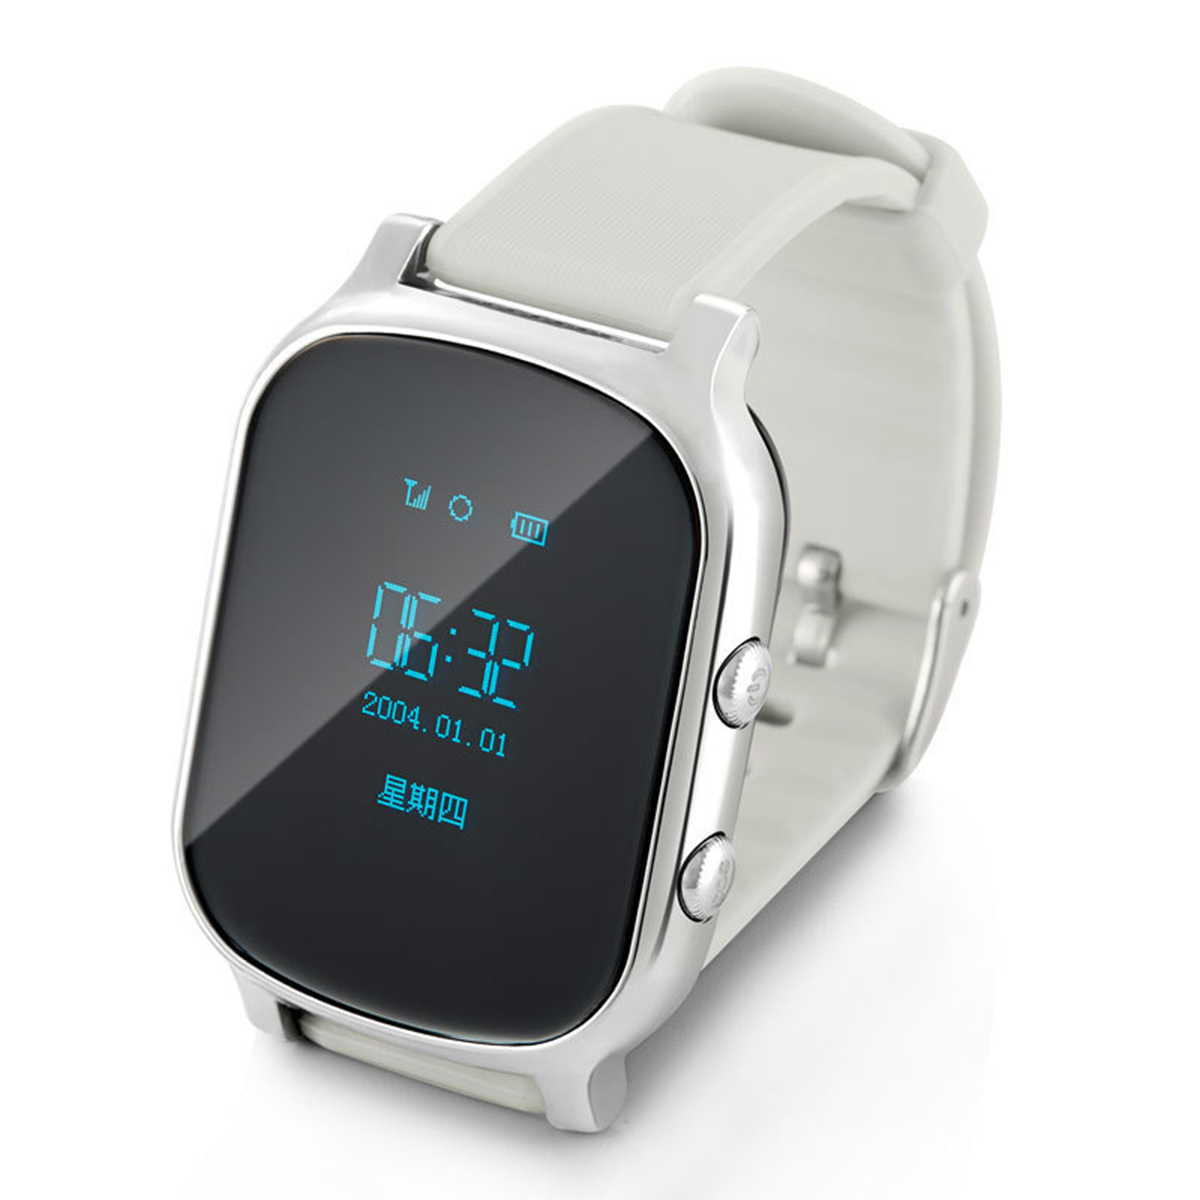 GPS Watch Tracker Smart Brand w/ GPS Tracker, Remote Monitor, SOS, Track Playback - Silver + Black